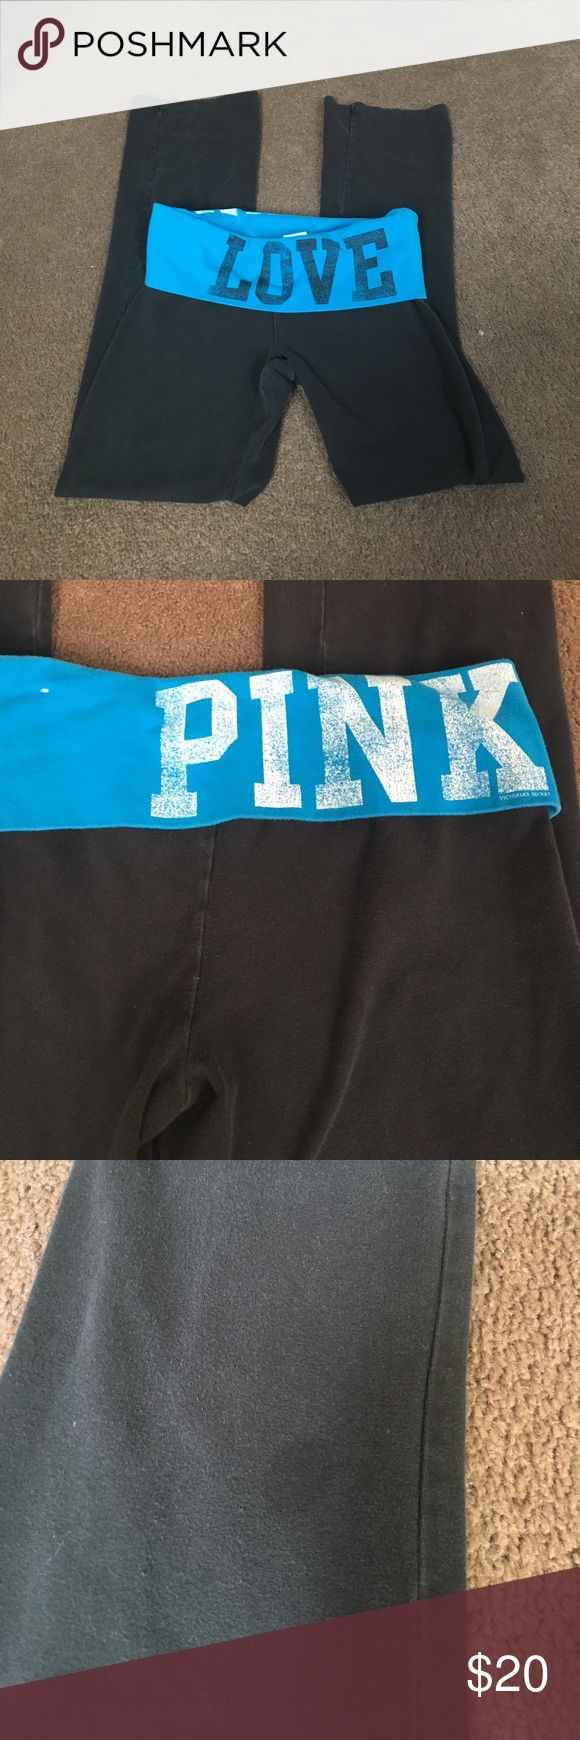 VS PINK YOGA PANTS READ DESCRIPTION 🌸VS PINK YOGA PANTS, size medium!                                           🌸Small dark stain on the front as shown, and they have some fade to them PINK Victoria's Secret Pants Leggings